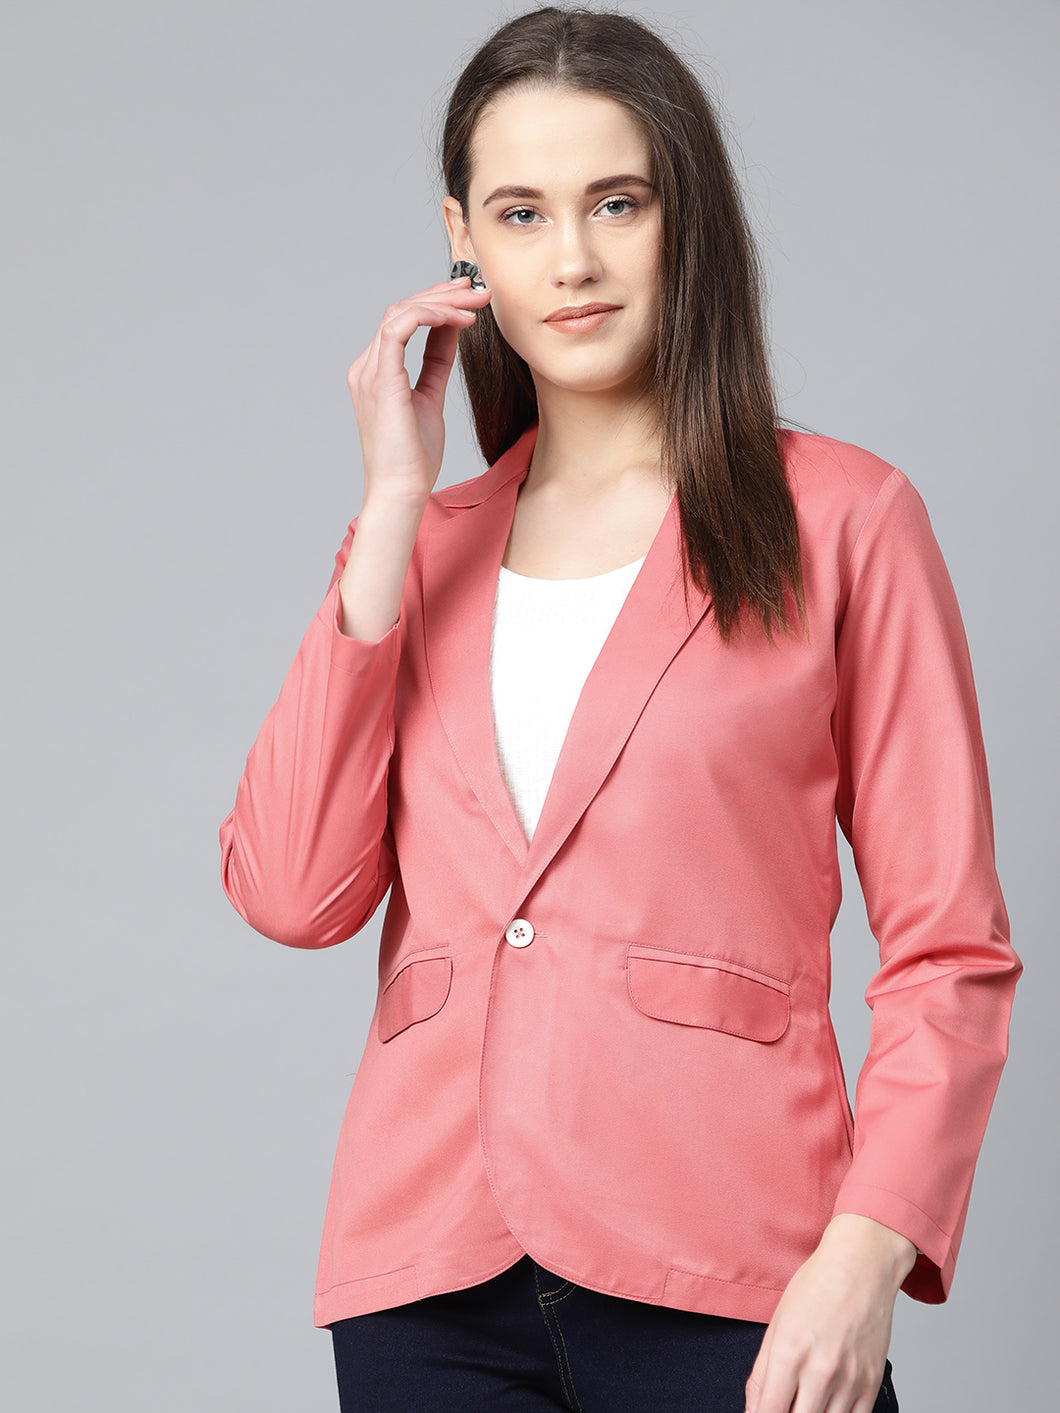 Jompers Women Peach Solid Single-Breasted Smart Casual Blazer